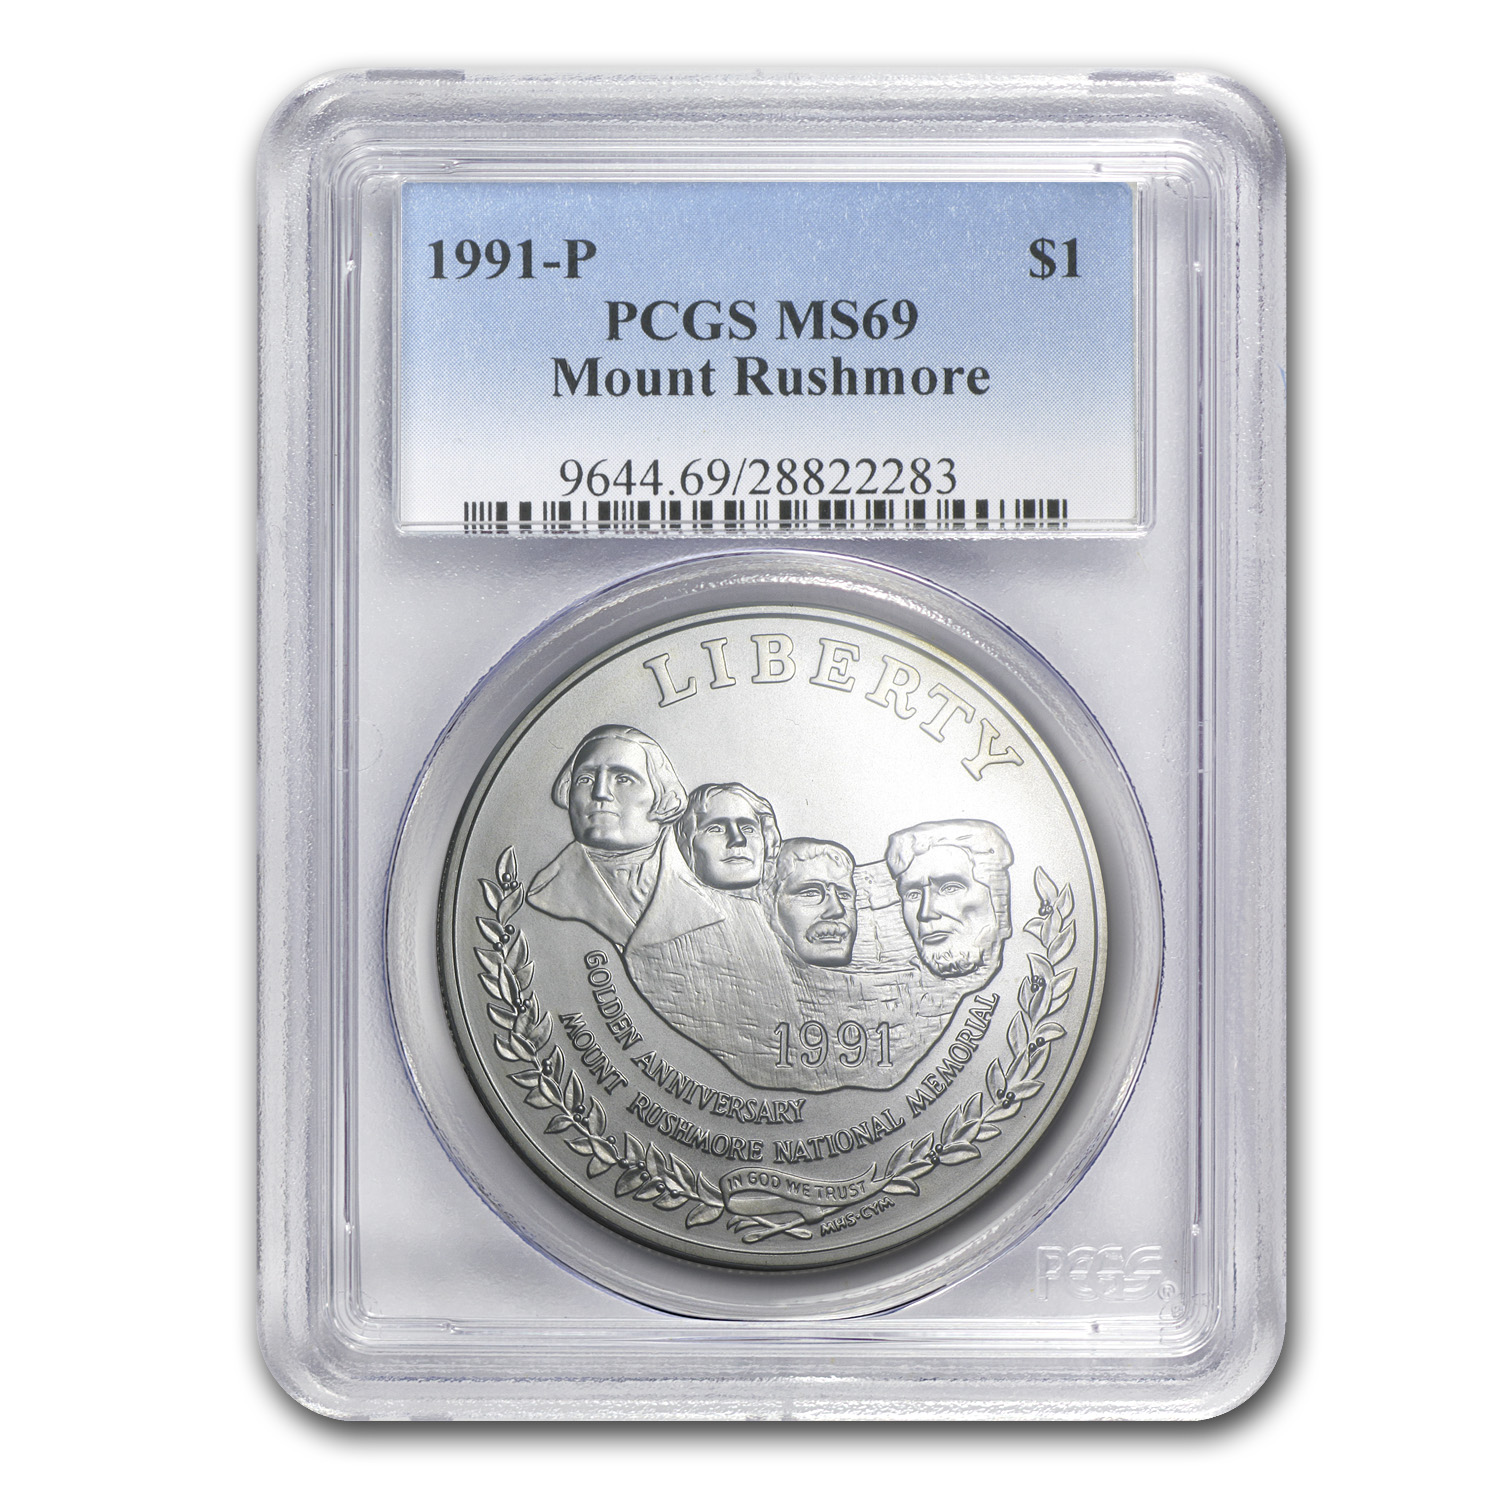 1991-P Mount Rushmore $1 Silver Commemorative MS-69 PCGS